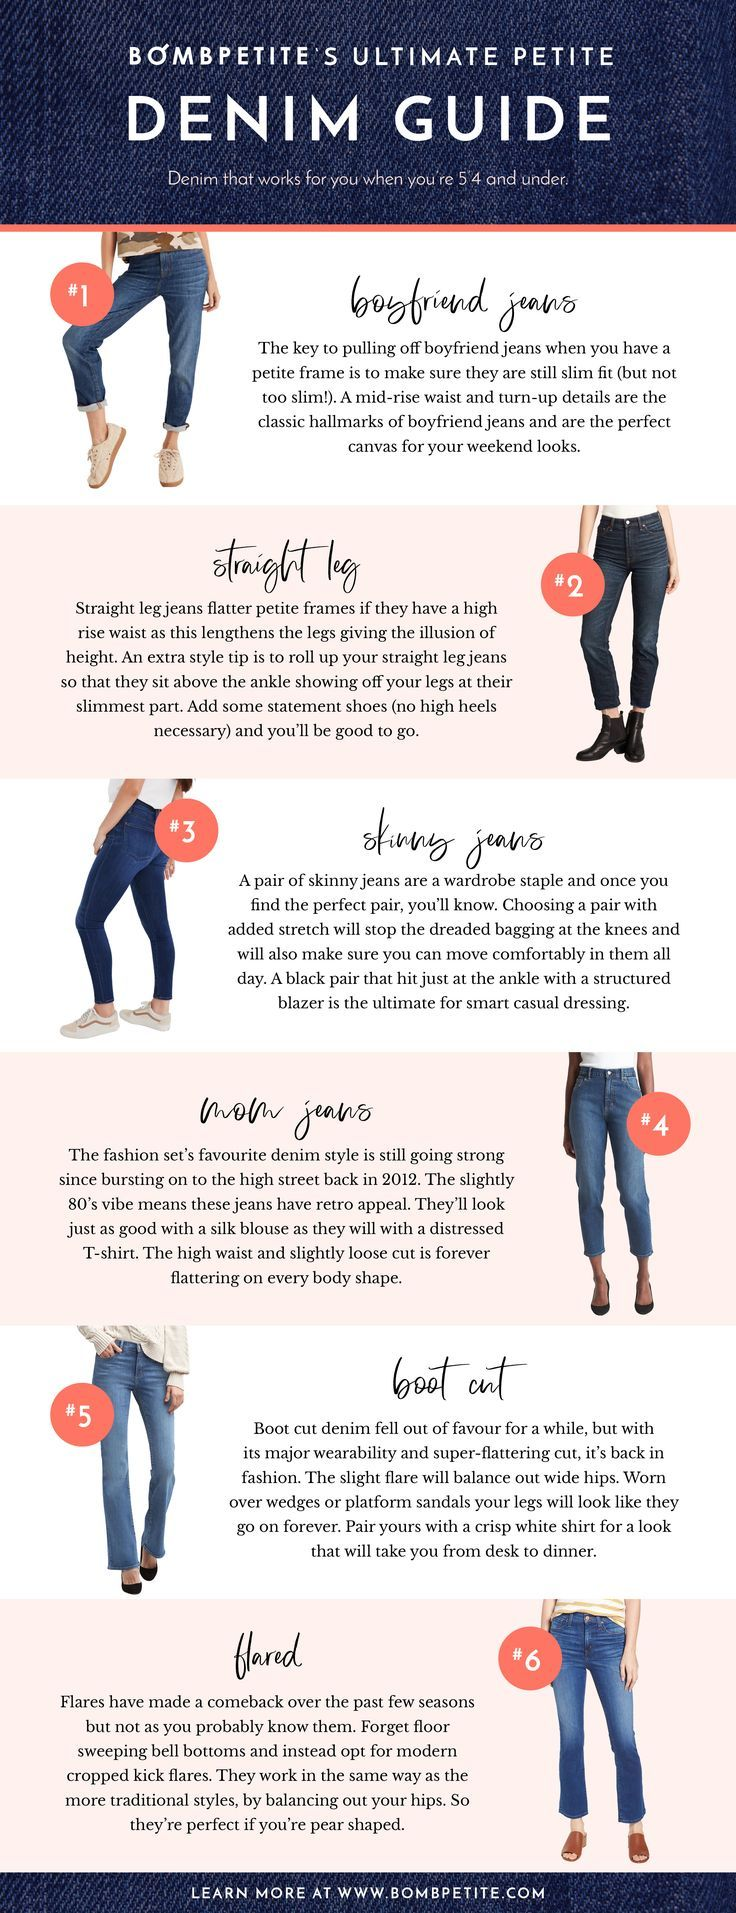 The definitive petite denim information